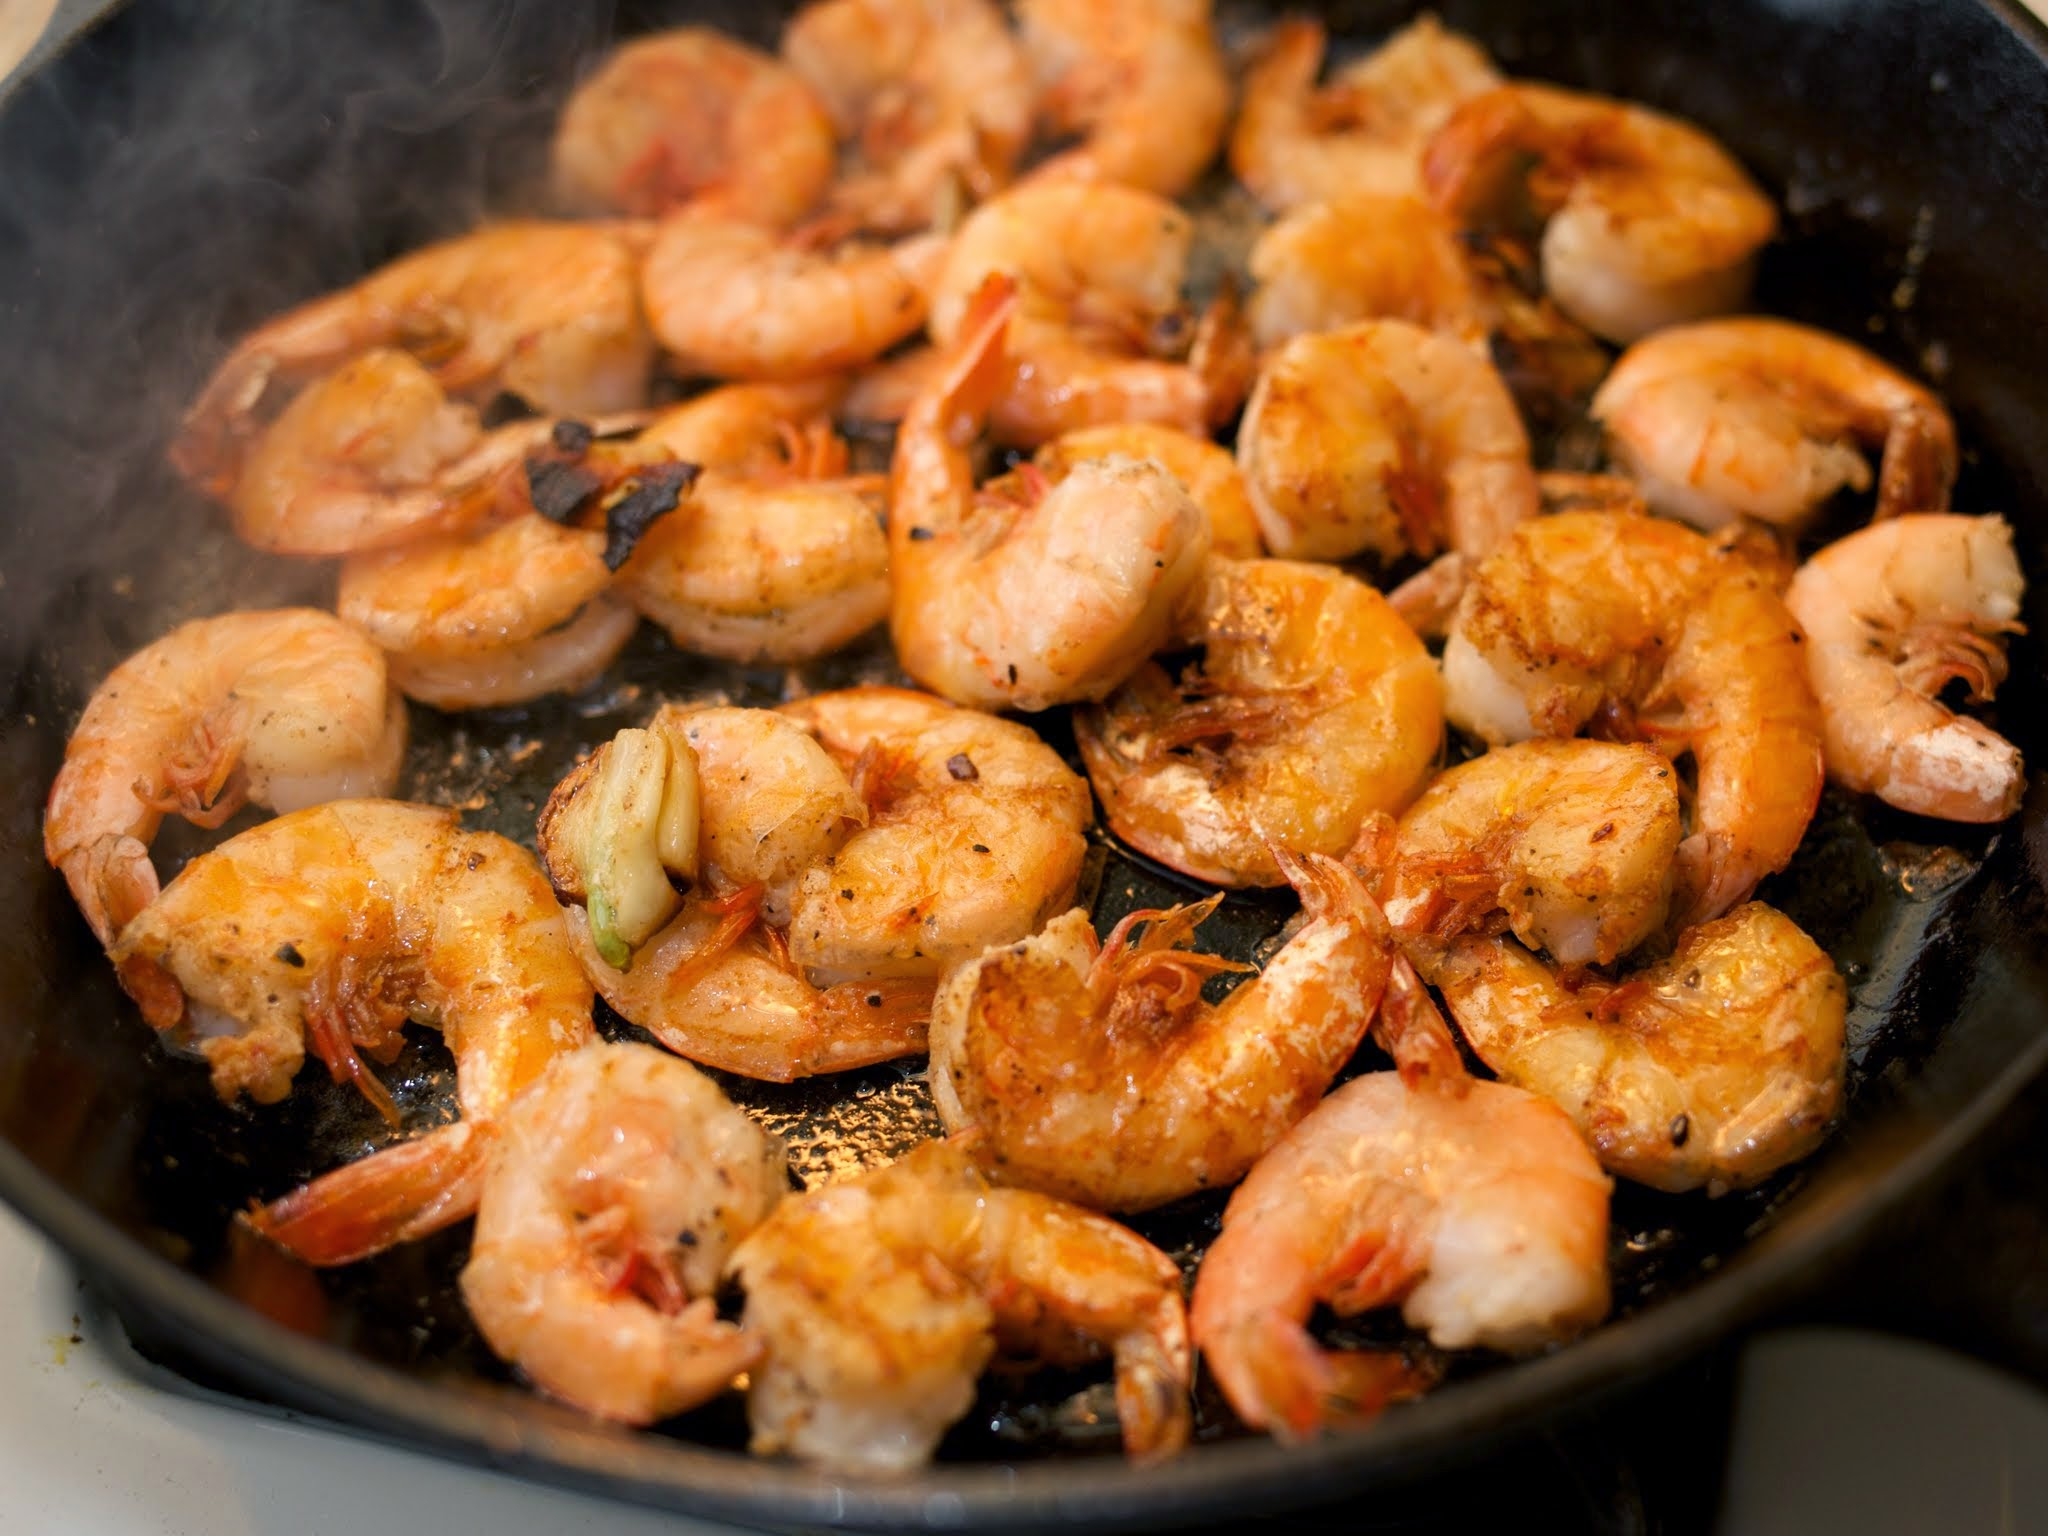 saute the shrimp add the shrimp stir to coat